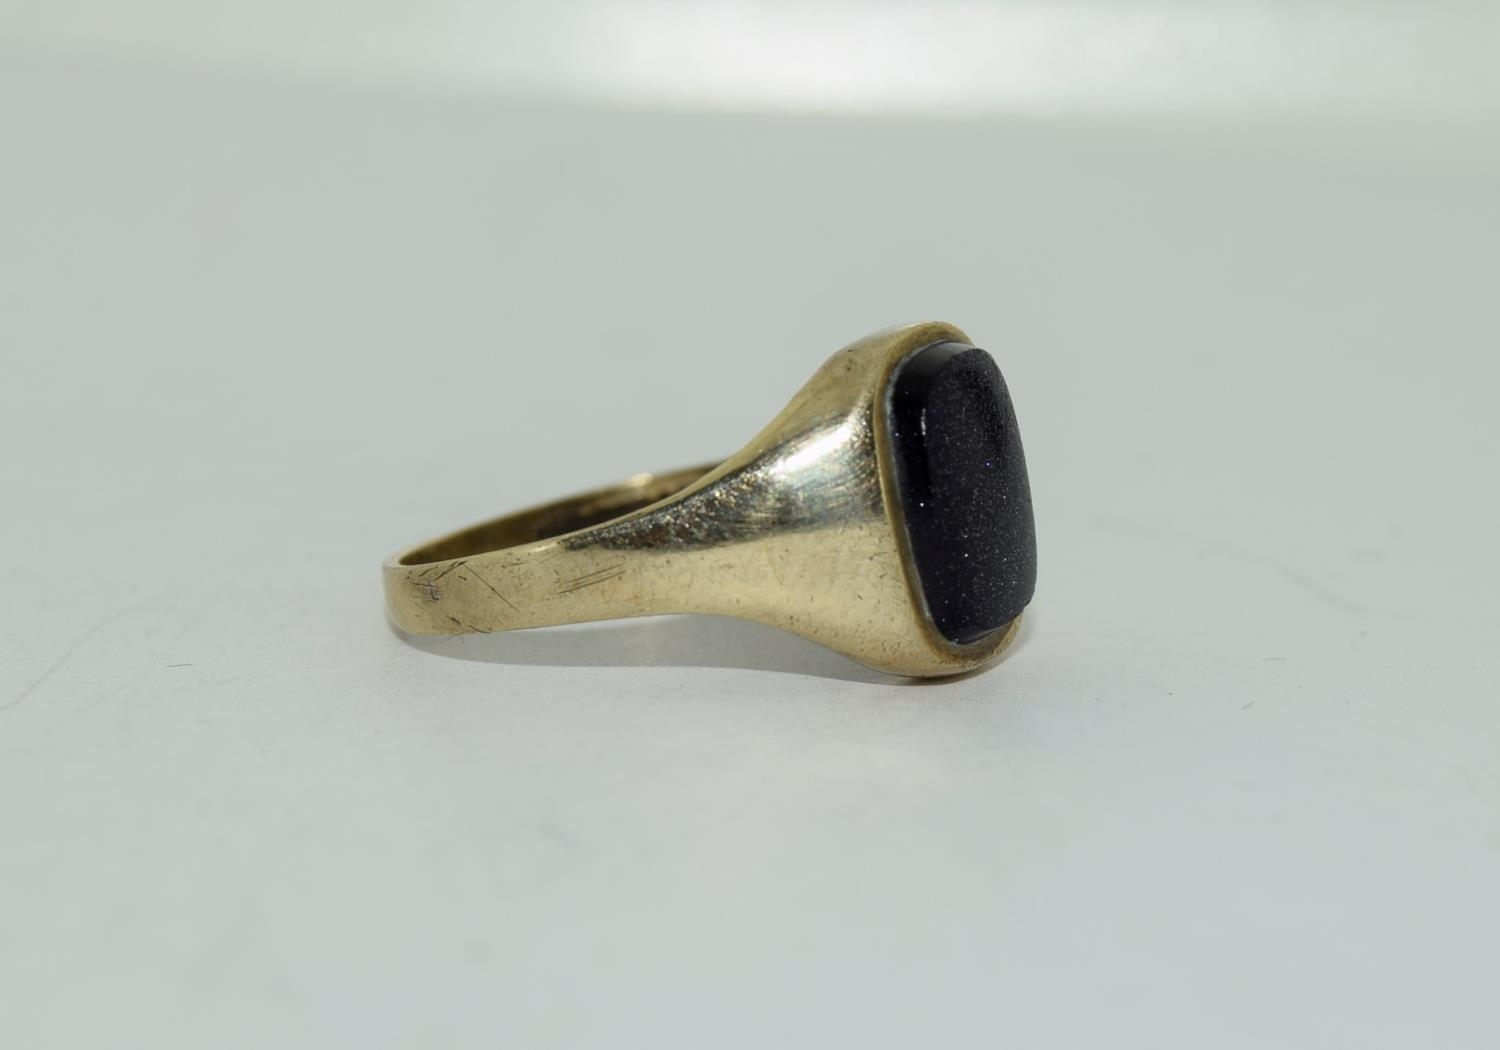 9ct gold gents sygnet ring set with unpolished amethyst centre stone size Q - Image 3 of 12